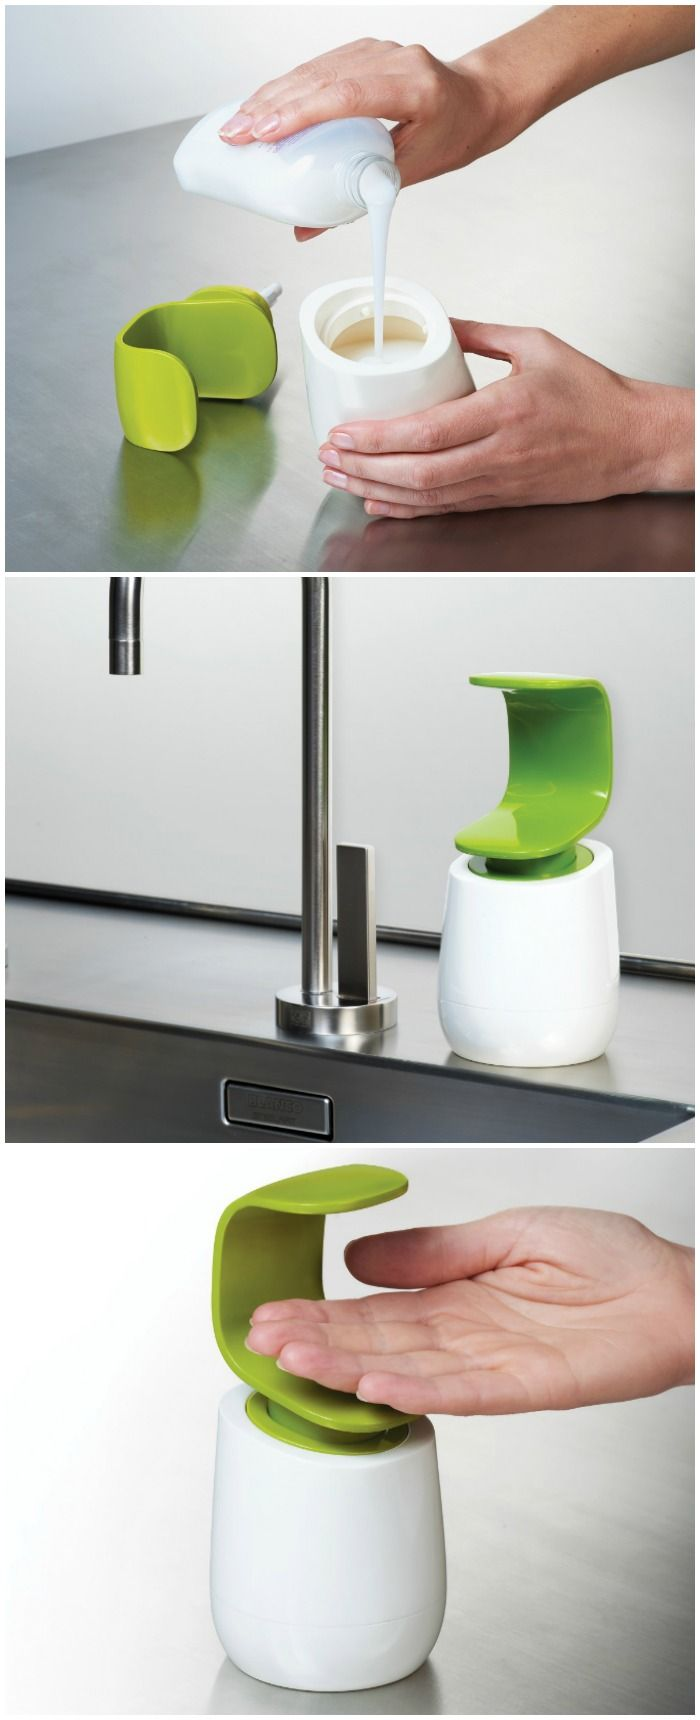 78 best Adaptive Cooking Solutions images on Pinterest   Kitchen ...